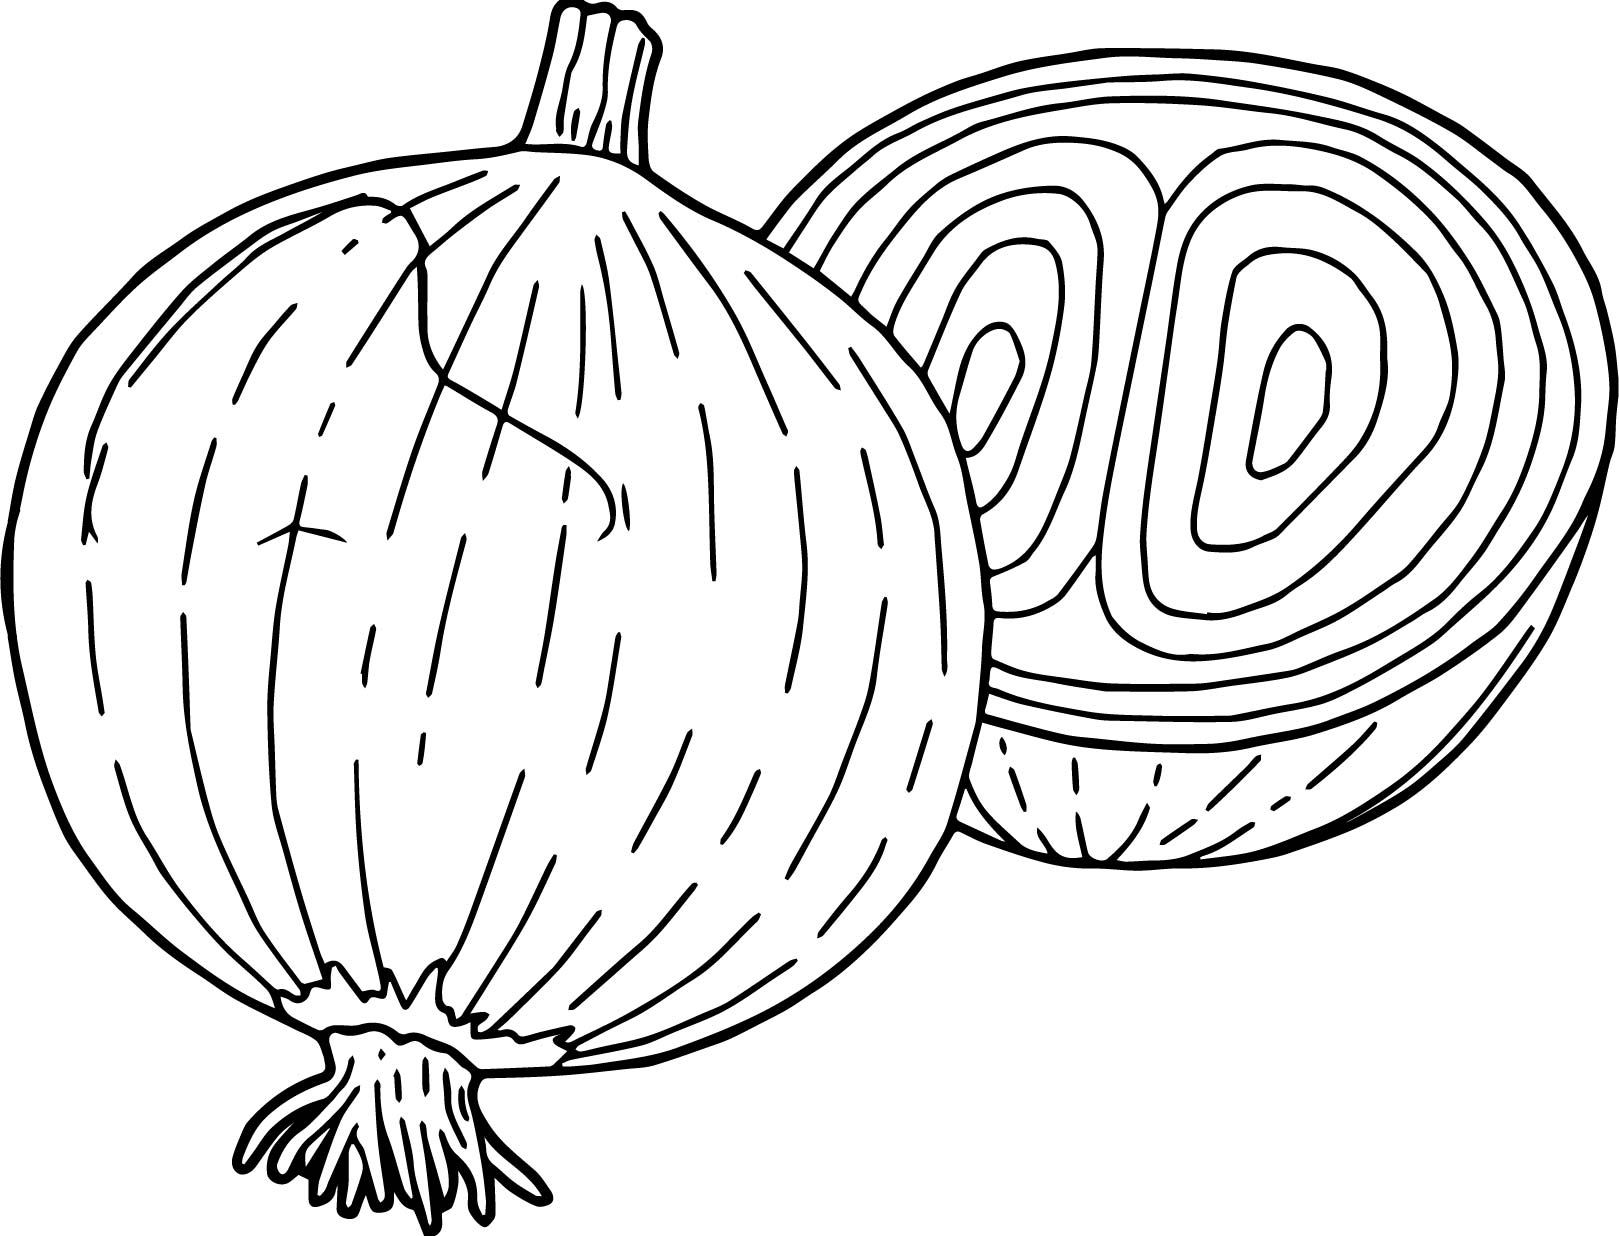 Vegetables Onion Coloring Page